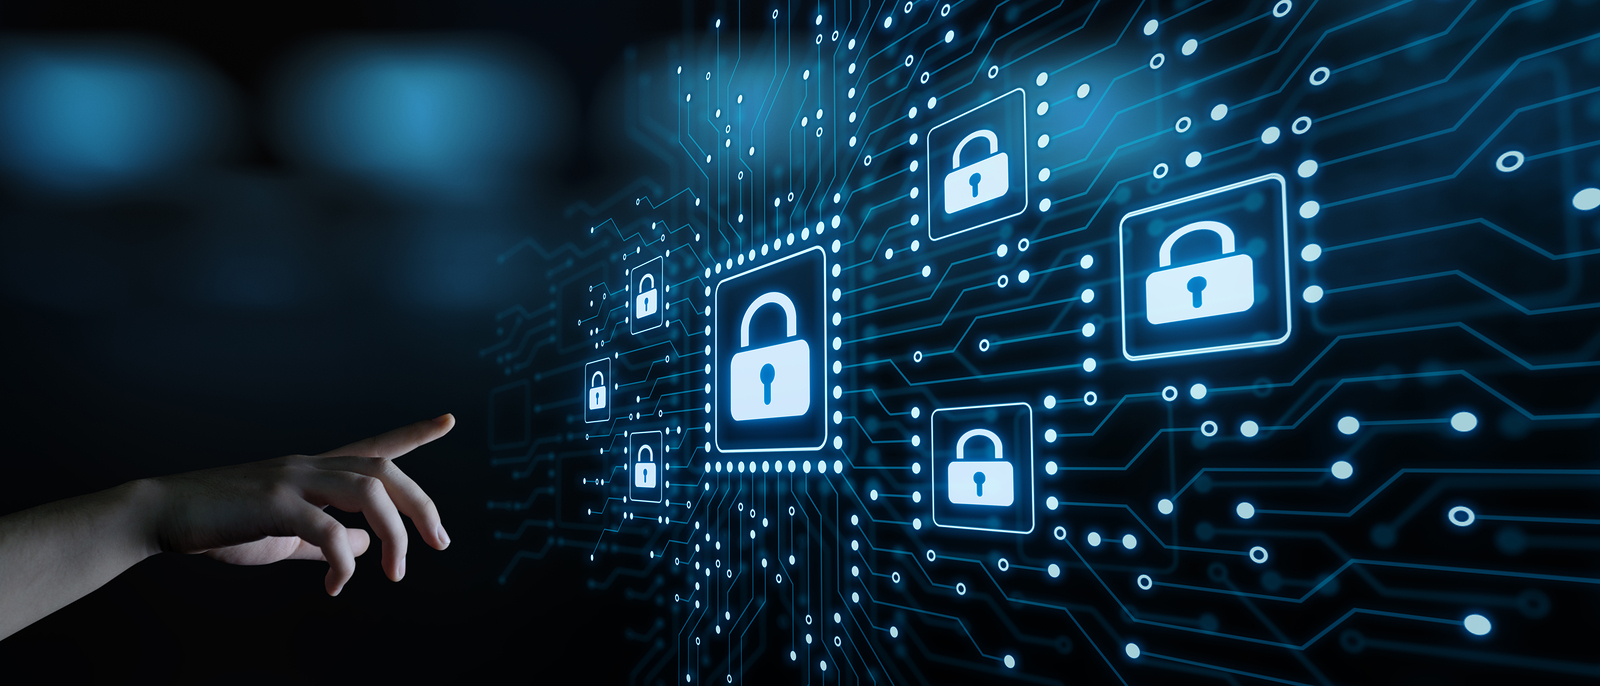 bigstock-Cyber-Security-Data-Protection-252265303